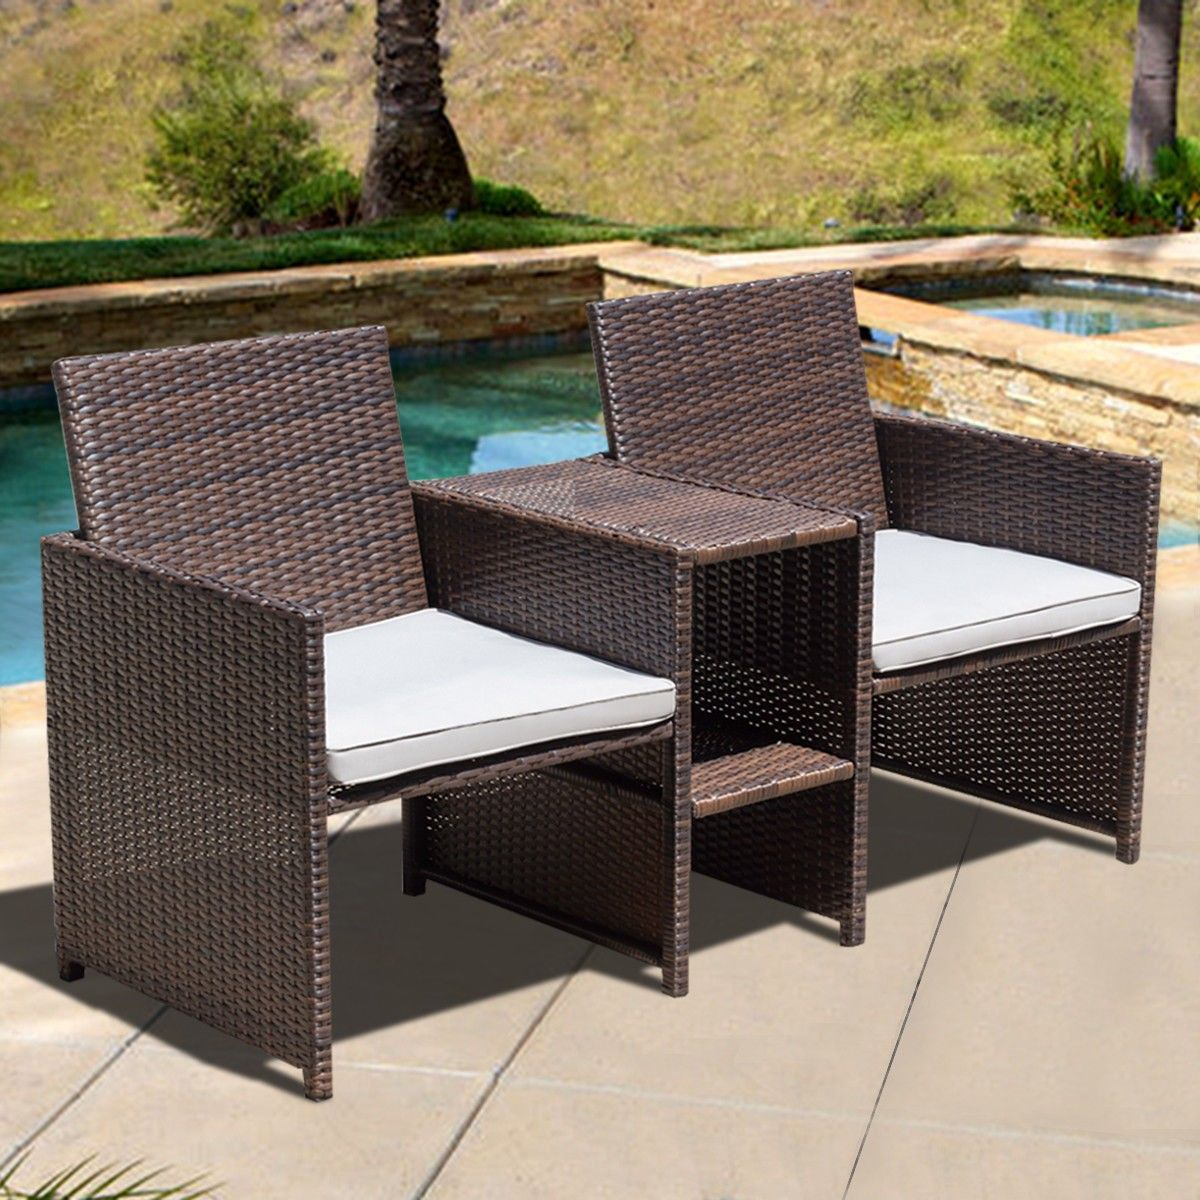 Outdoor rattan sofa chair furniture set with cushion furniture